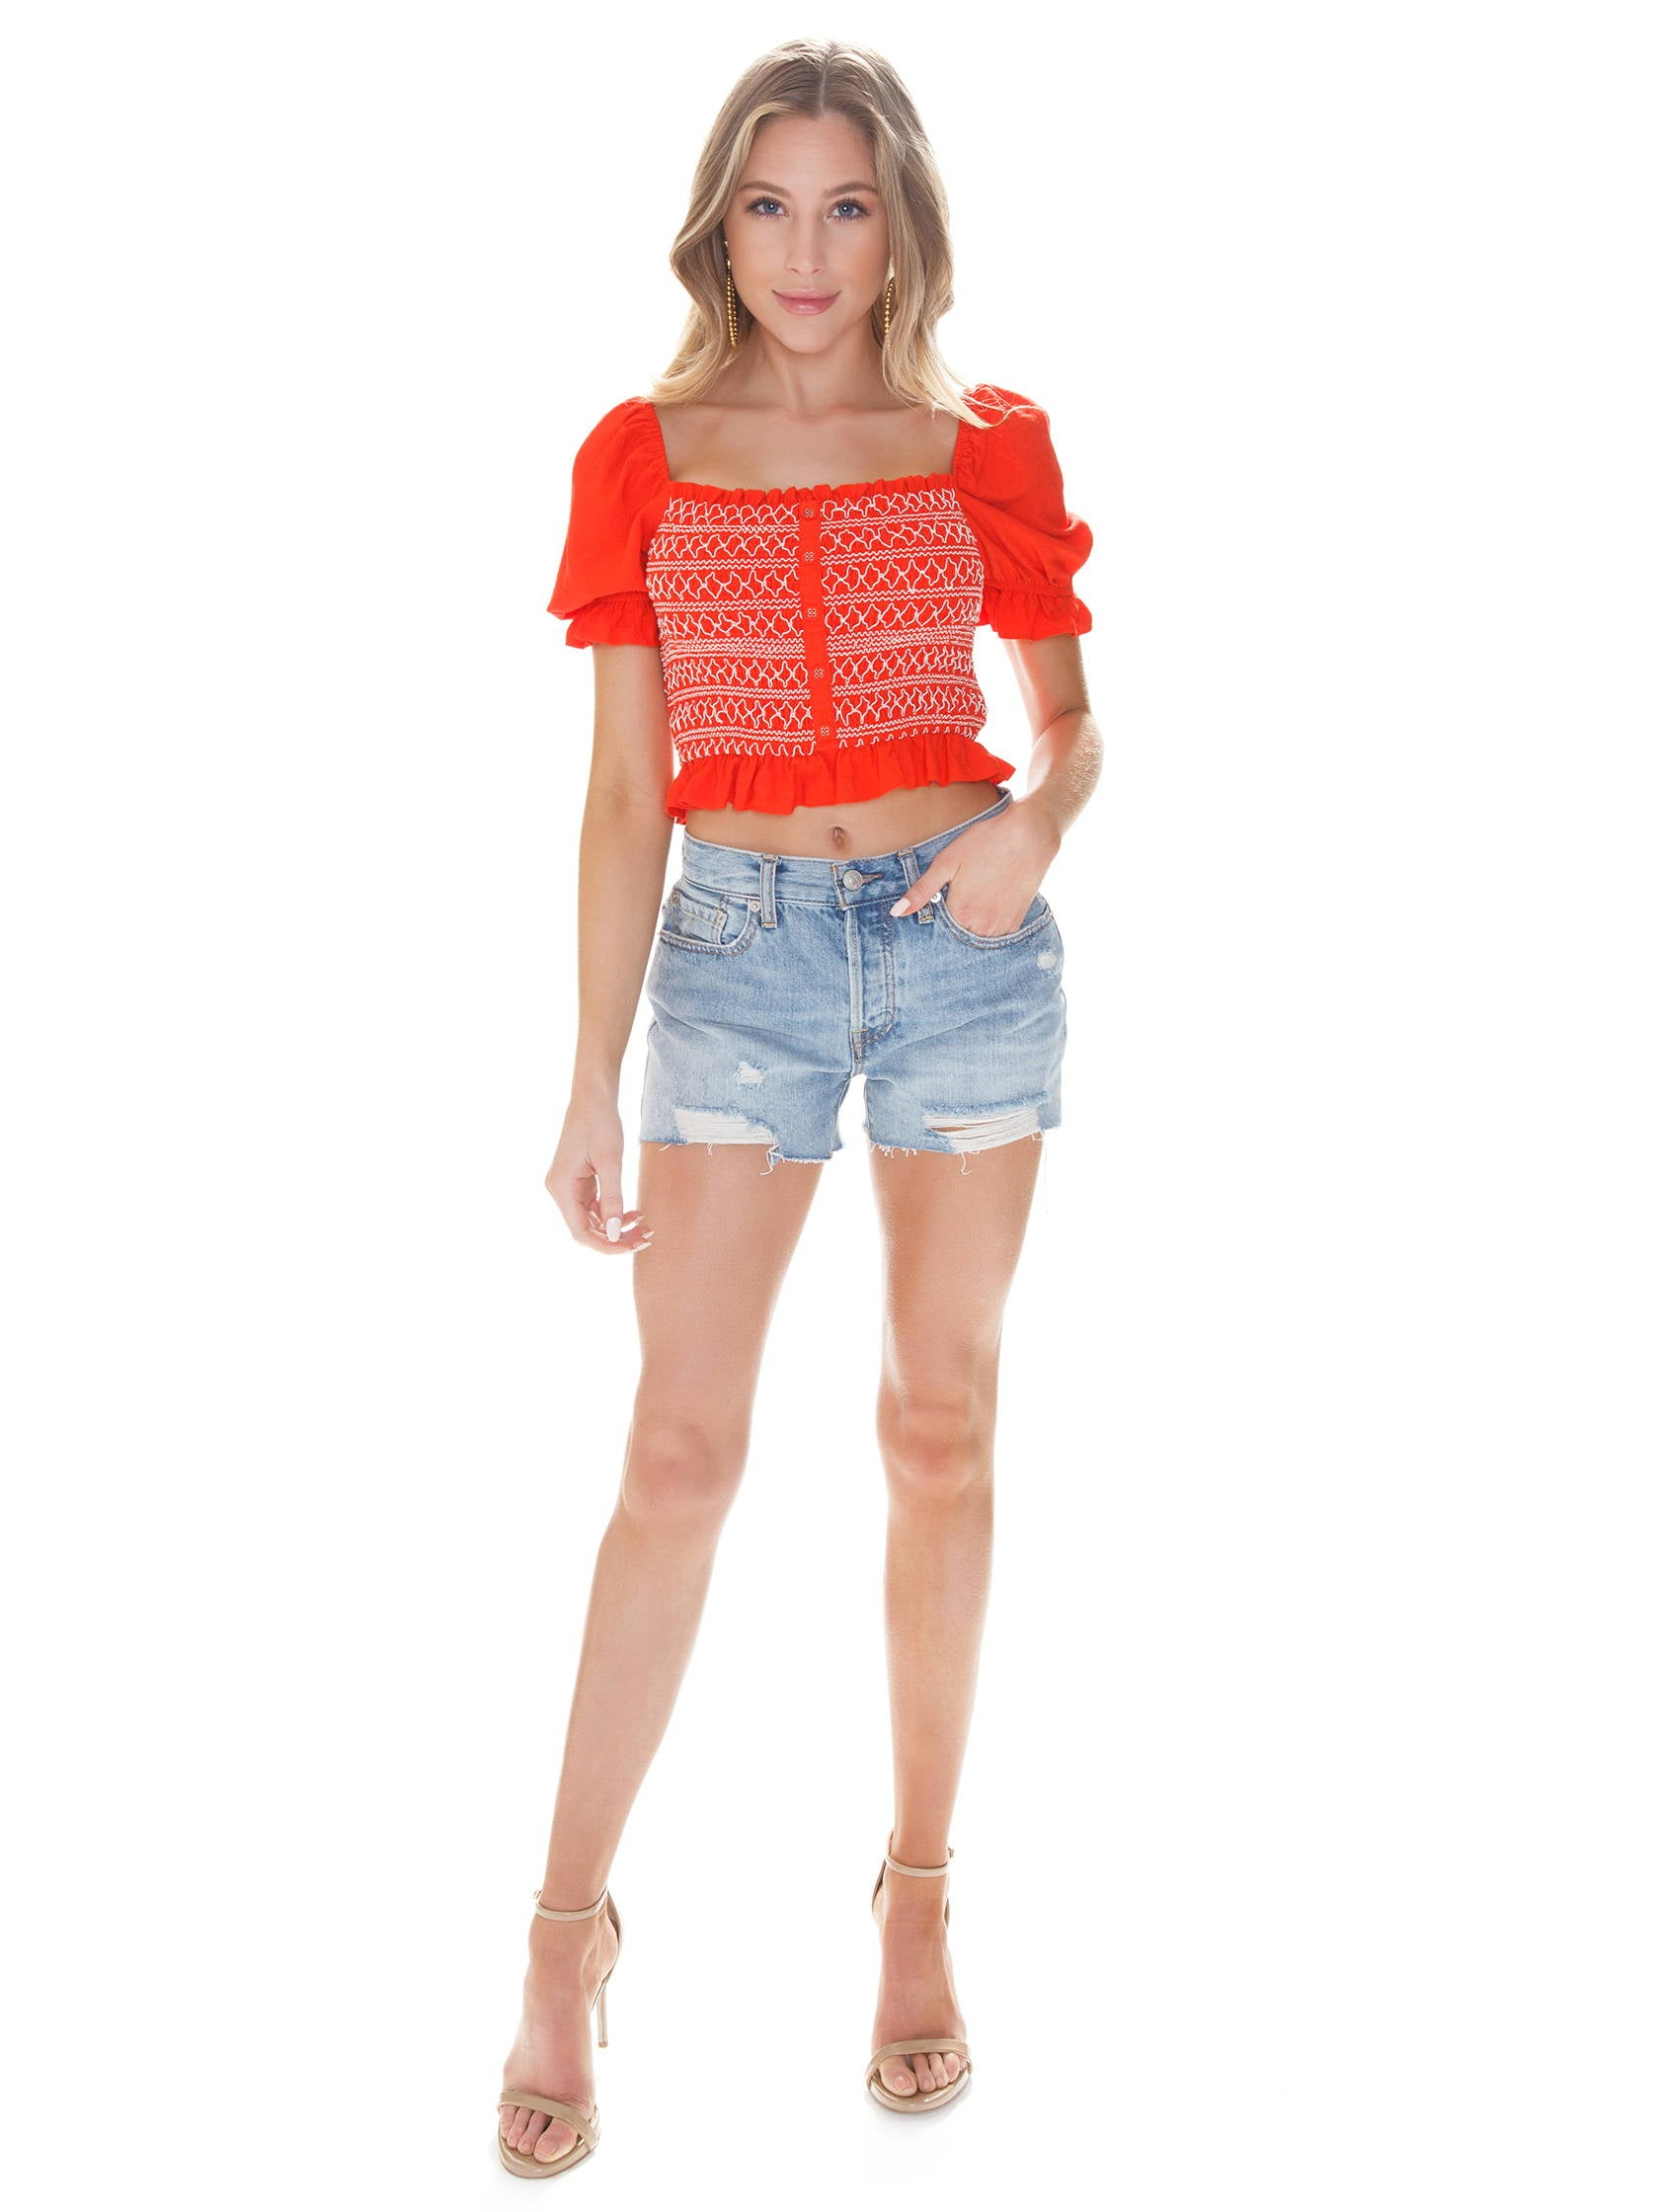 Girl wearing a top rental from LOST + WANDER called Bloody Mary Smocked Top